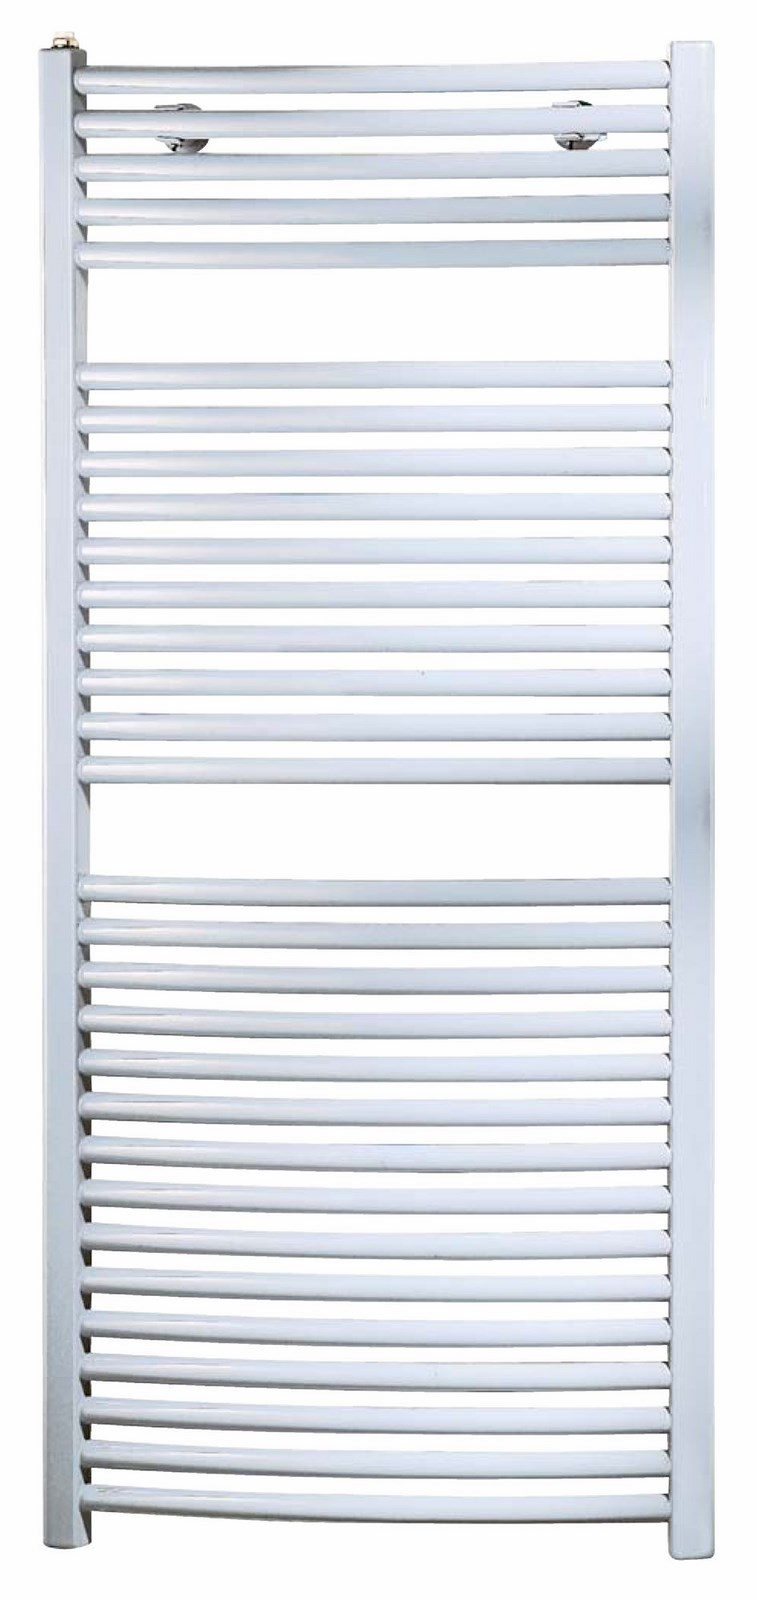 radiateur sche serviettes ola 2 chauffage central sanitaire distribution. Black Bedroom Furniture Sets. Home Design Ideas